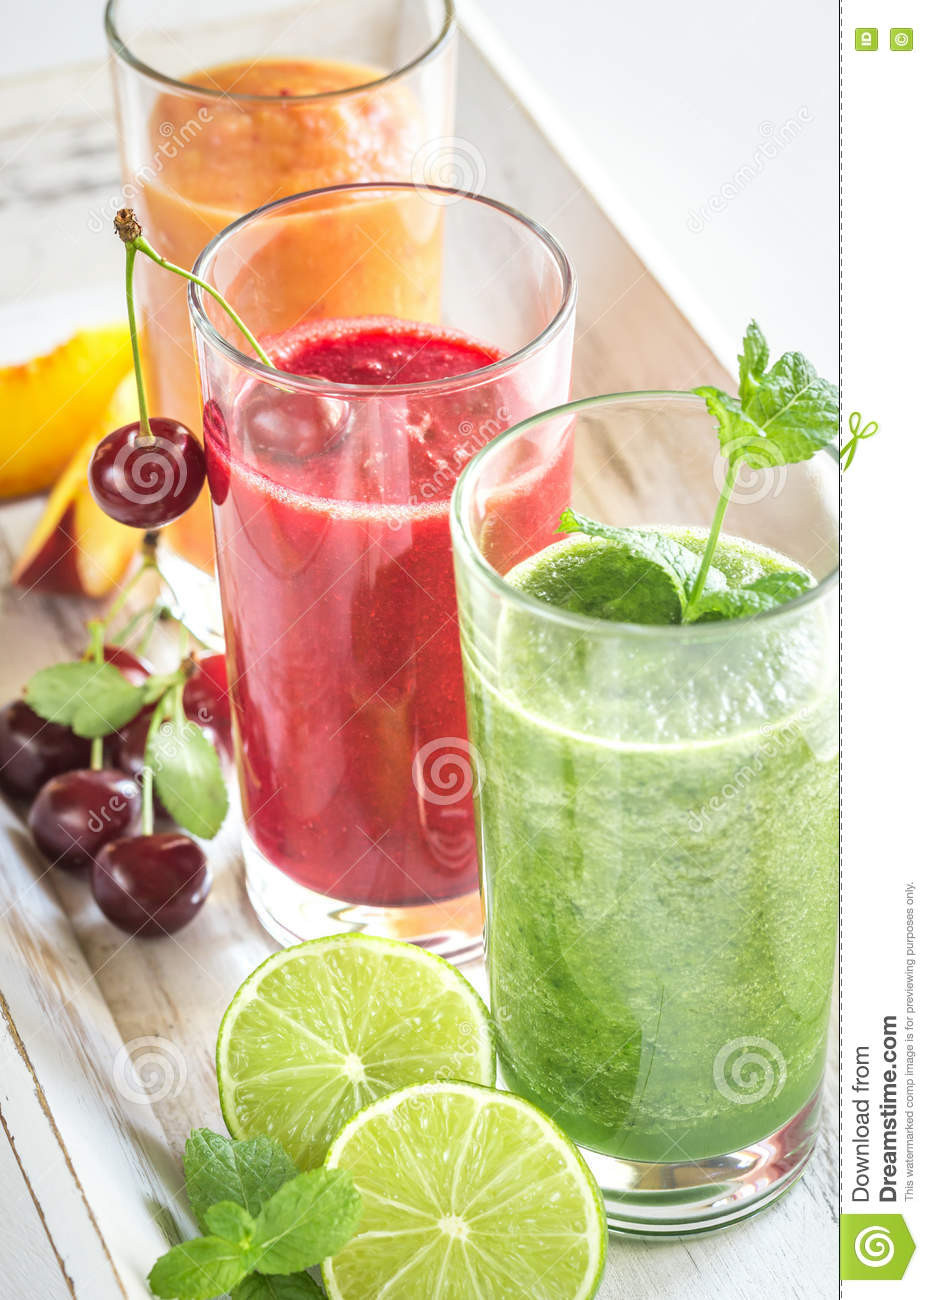 Healthy Vegetable Smoothies  Healthy Fruit And Ve able Smoothies Royalty Free Stock